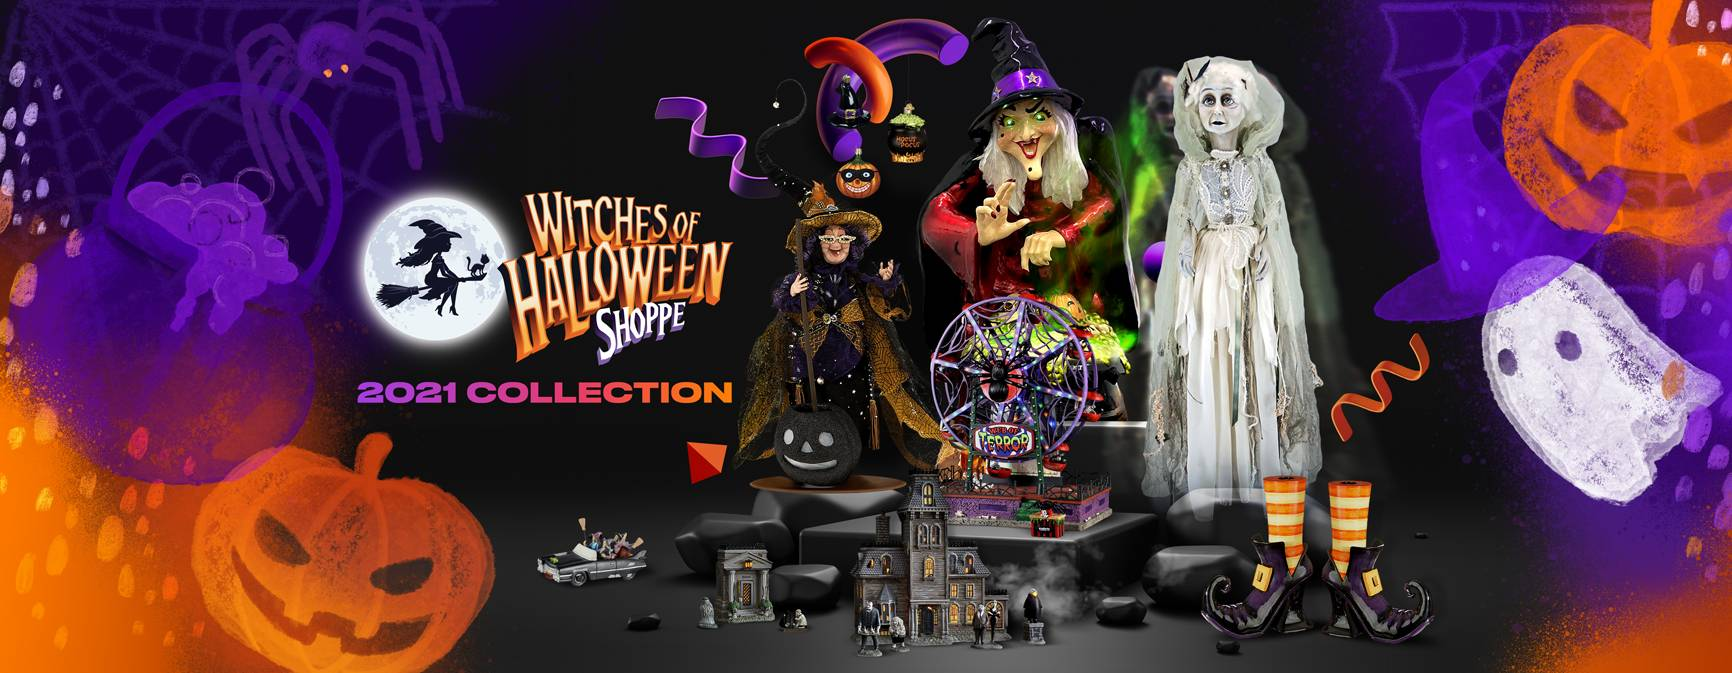 Witches of Halloween 2021 Collection